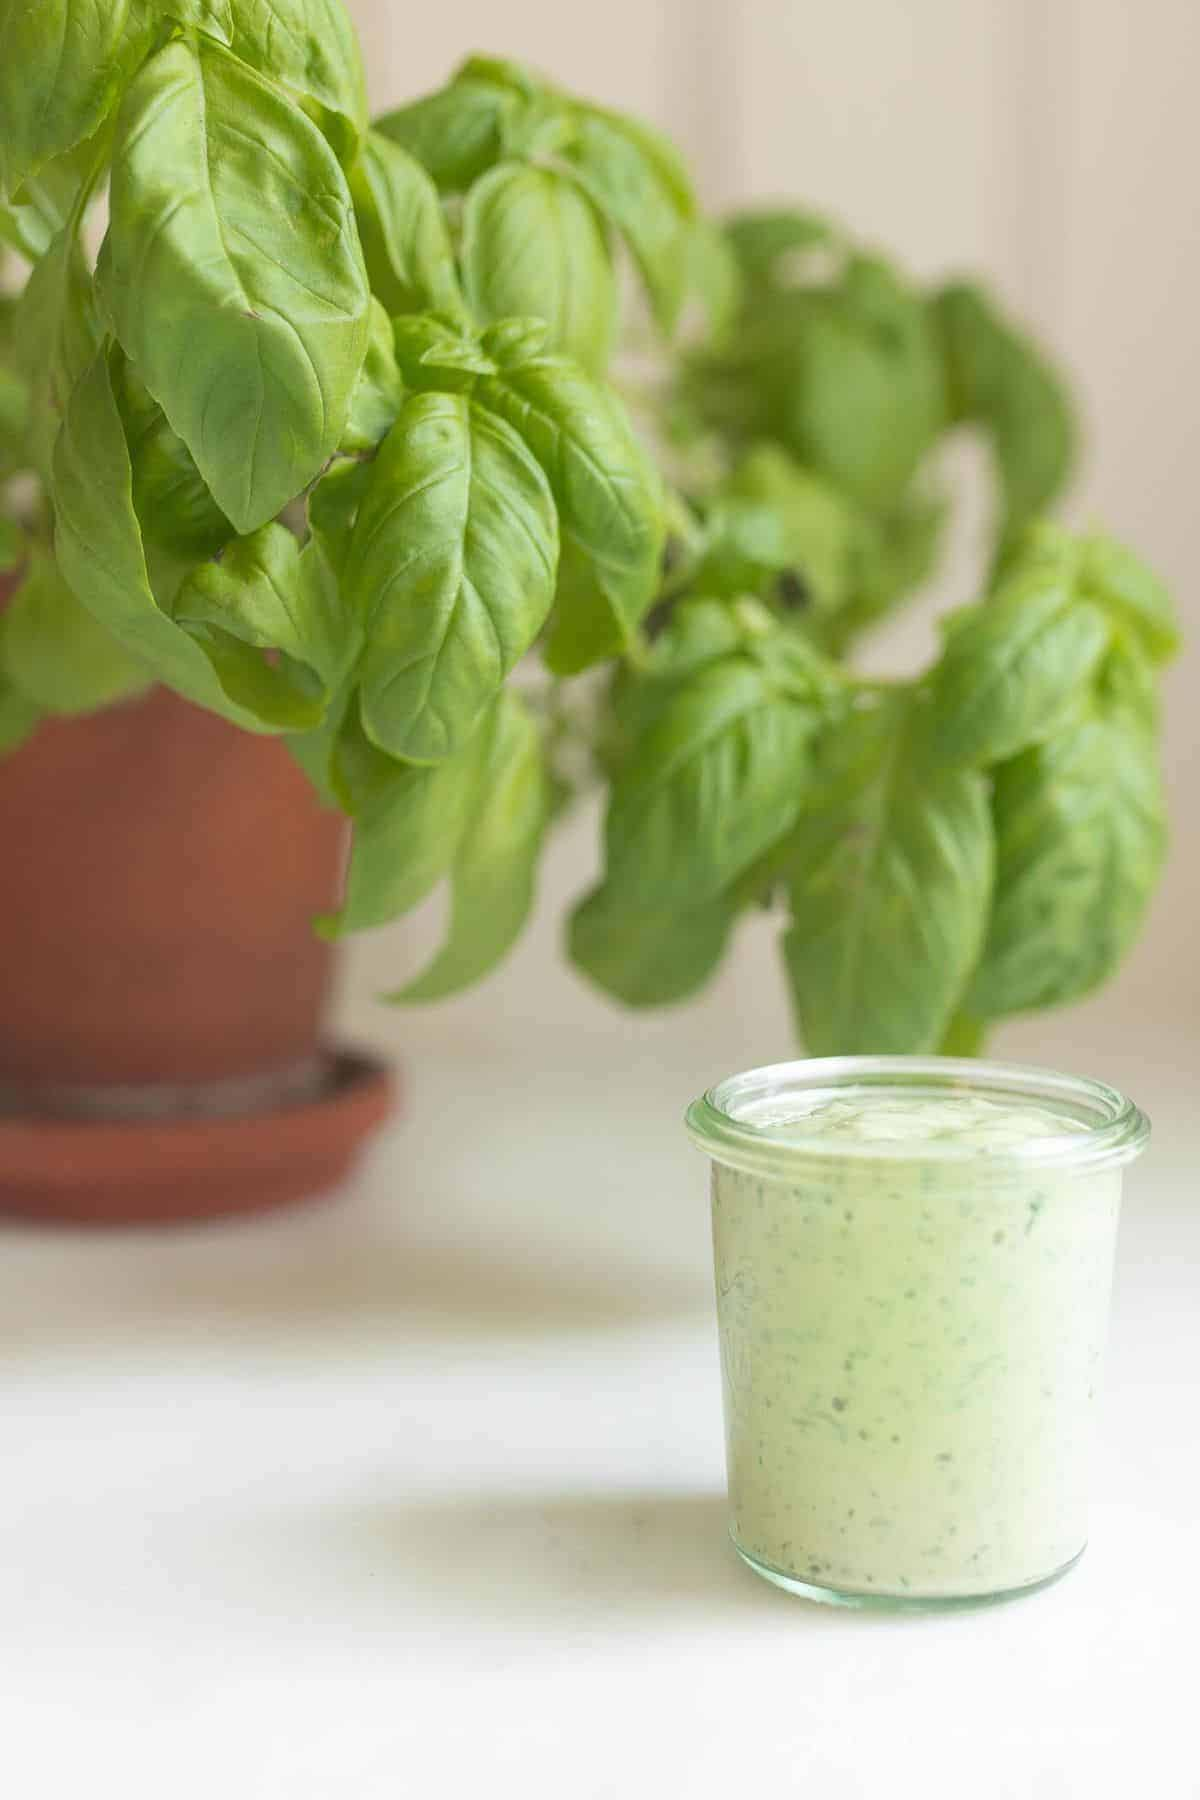 White surface with a small clear jar of pesto aioli and a basil plant to the side.